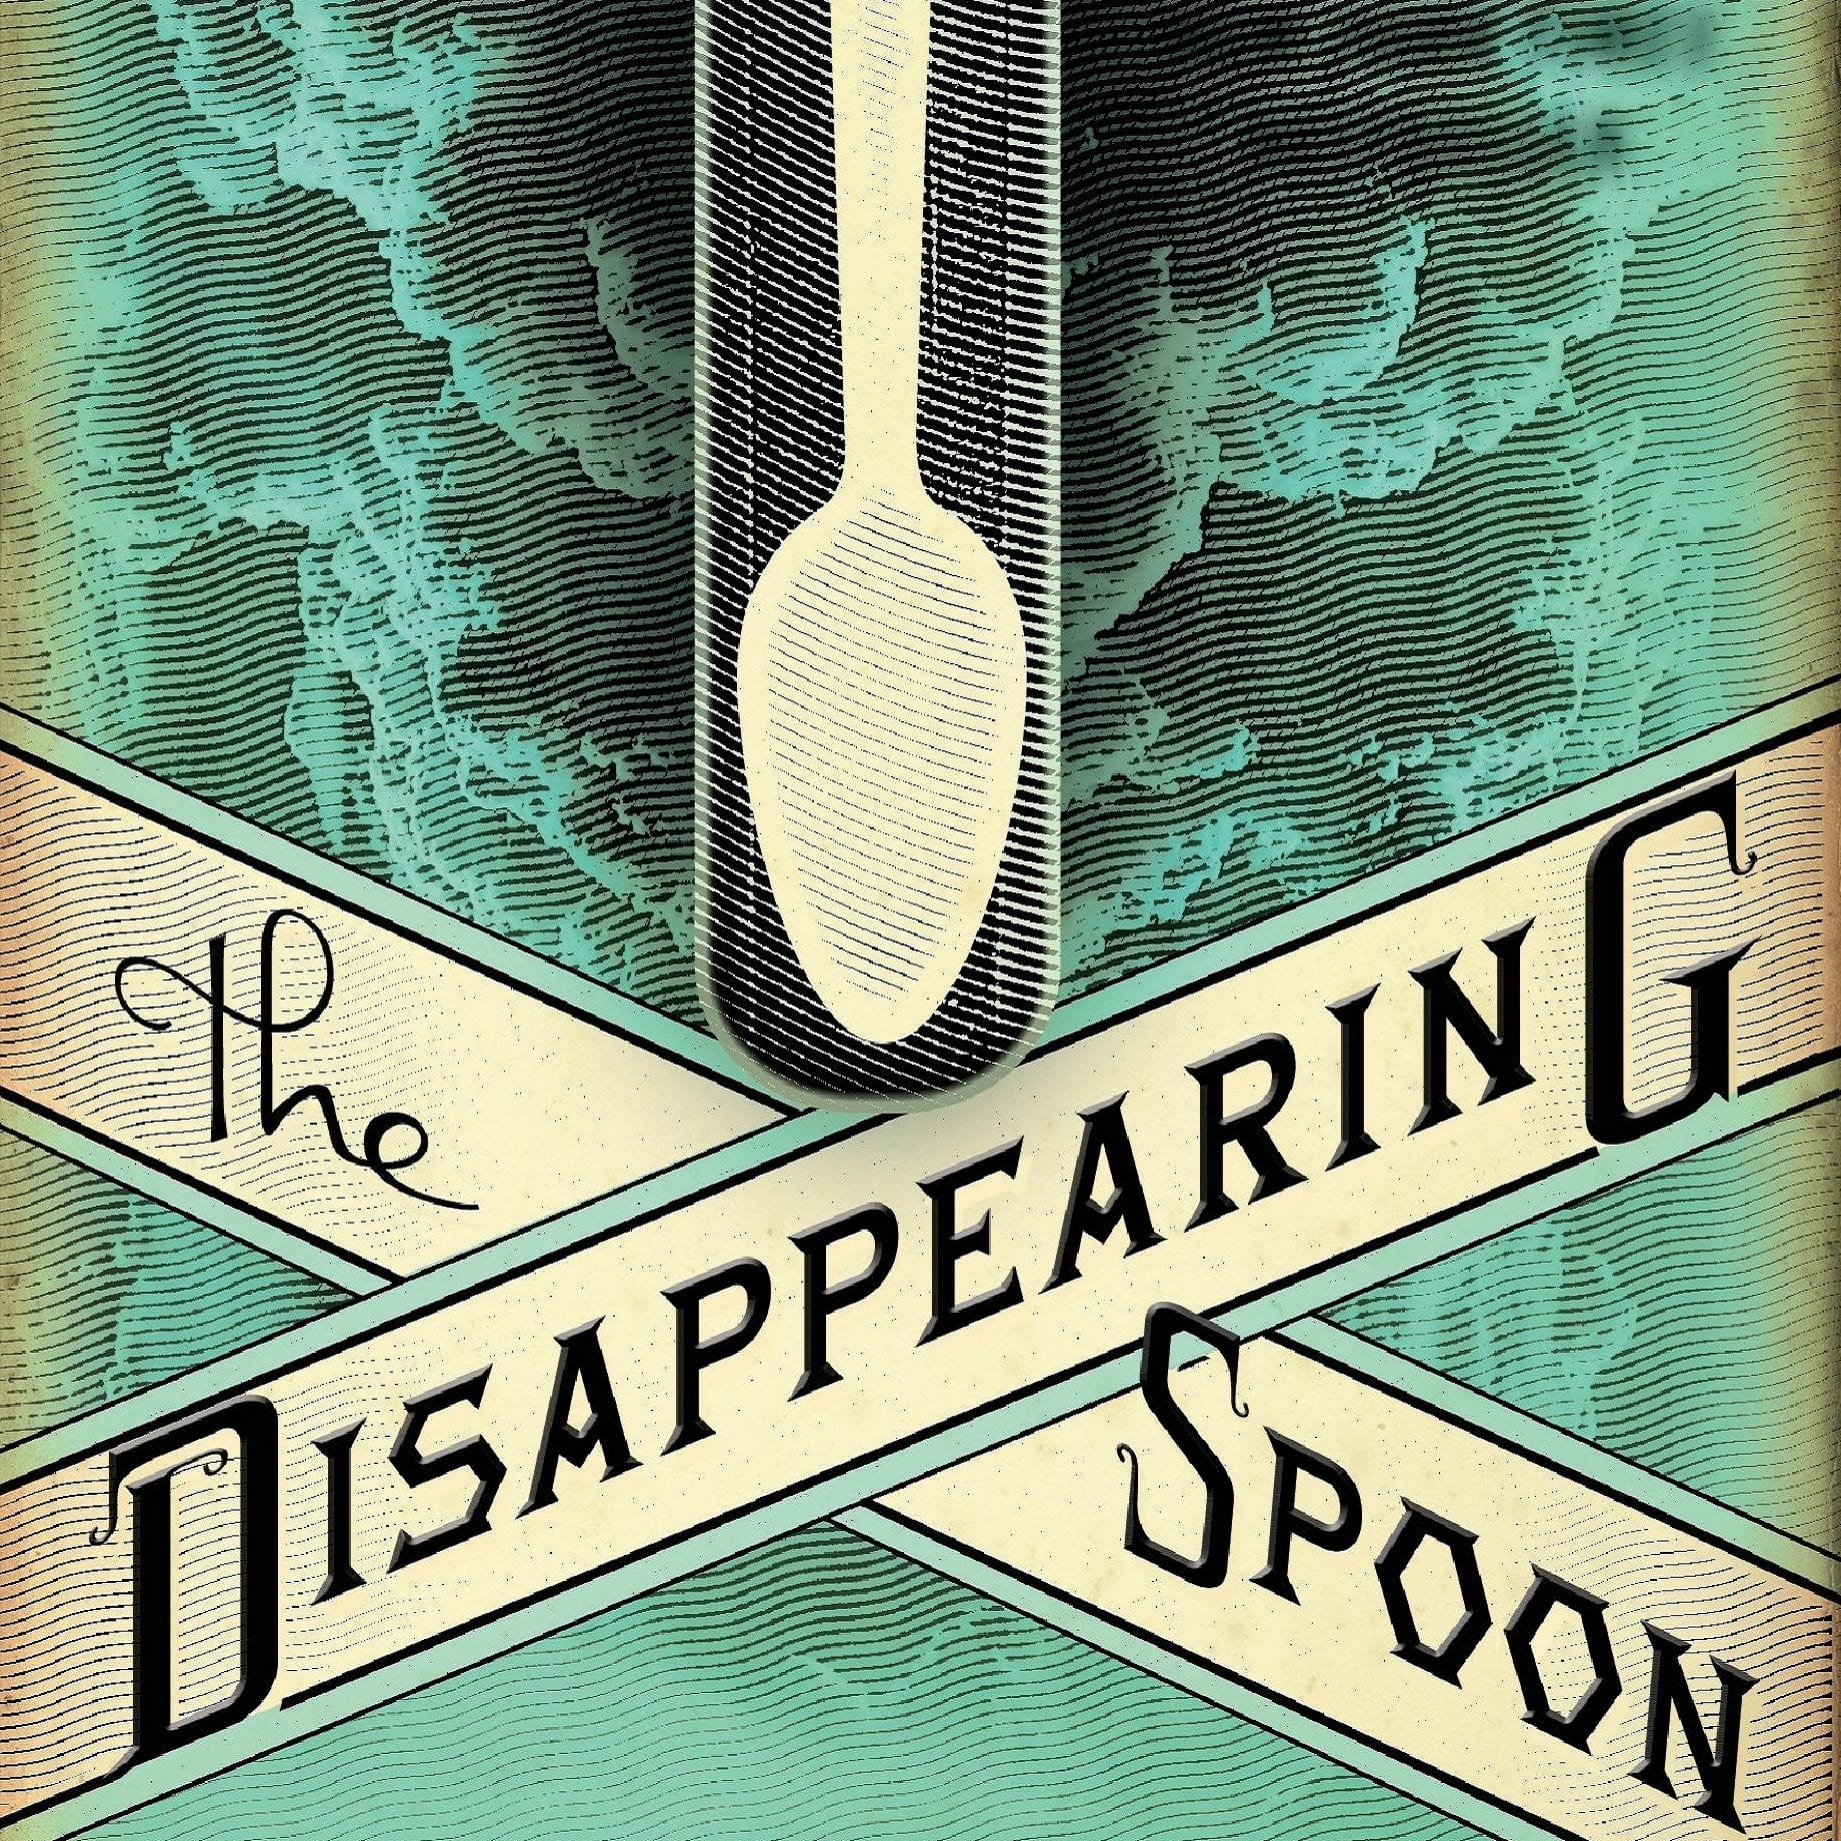 Disappearing Spoon: a science history podcast by Sam Kean podcast